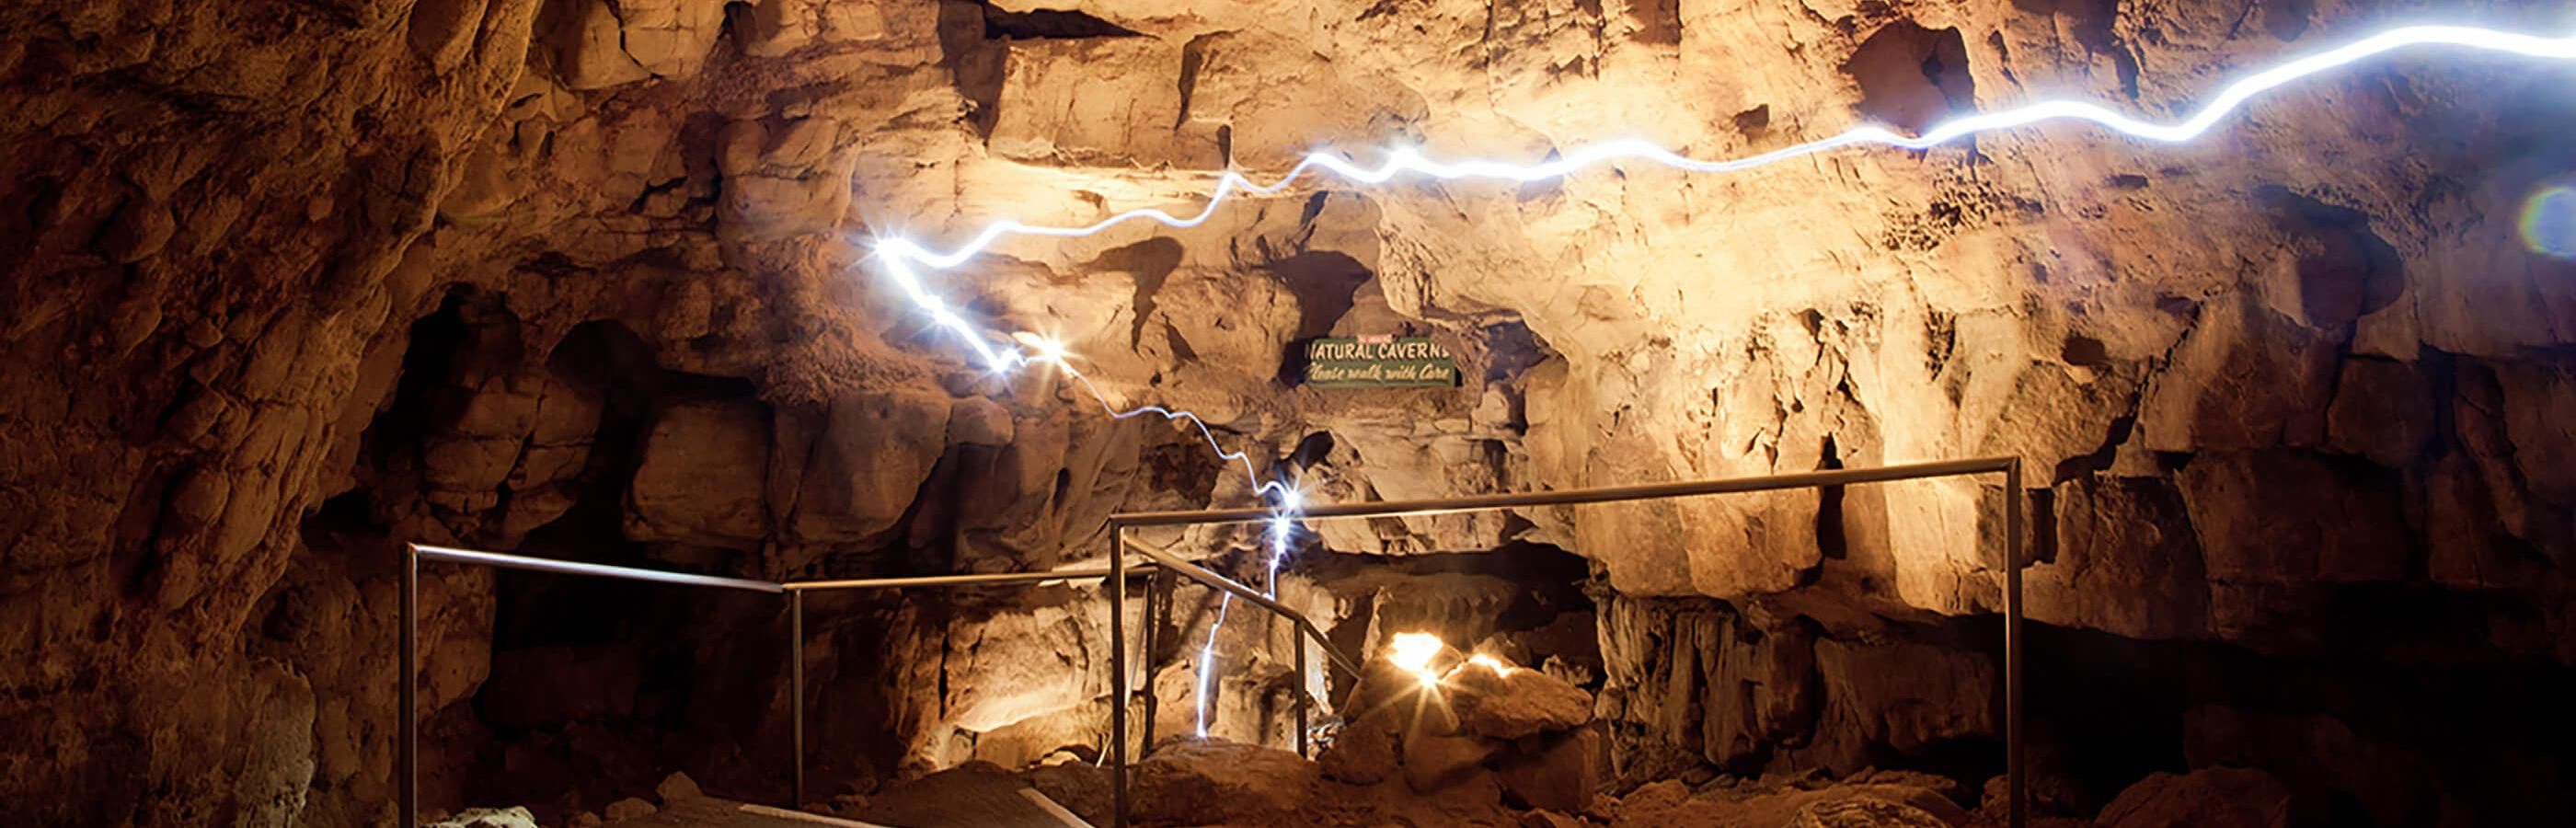 Rushmore Cave At Rush Mountain Adventure Park